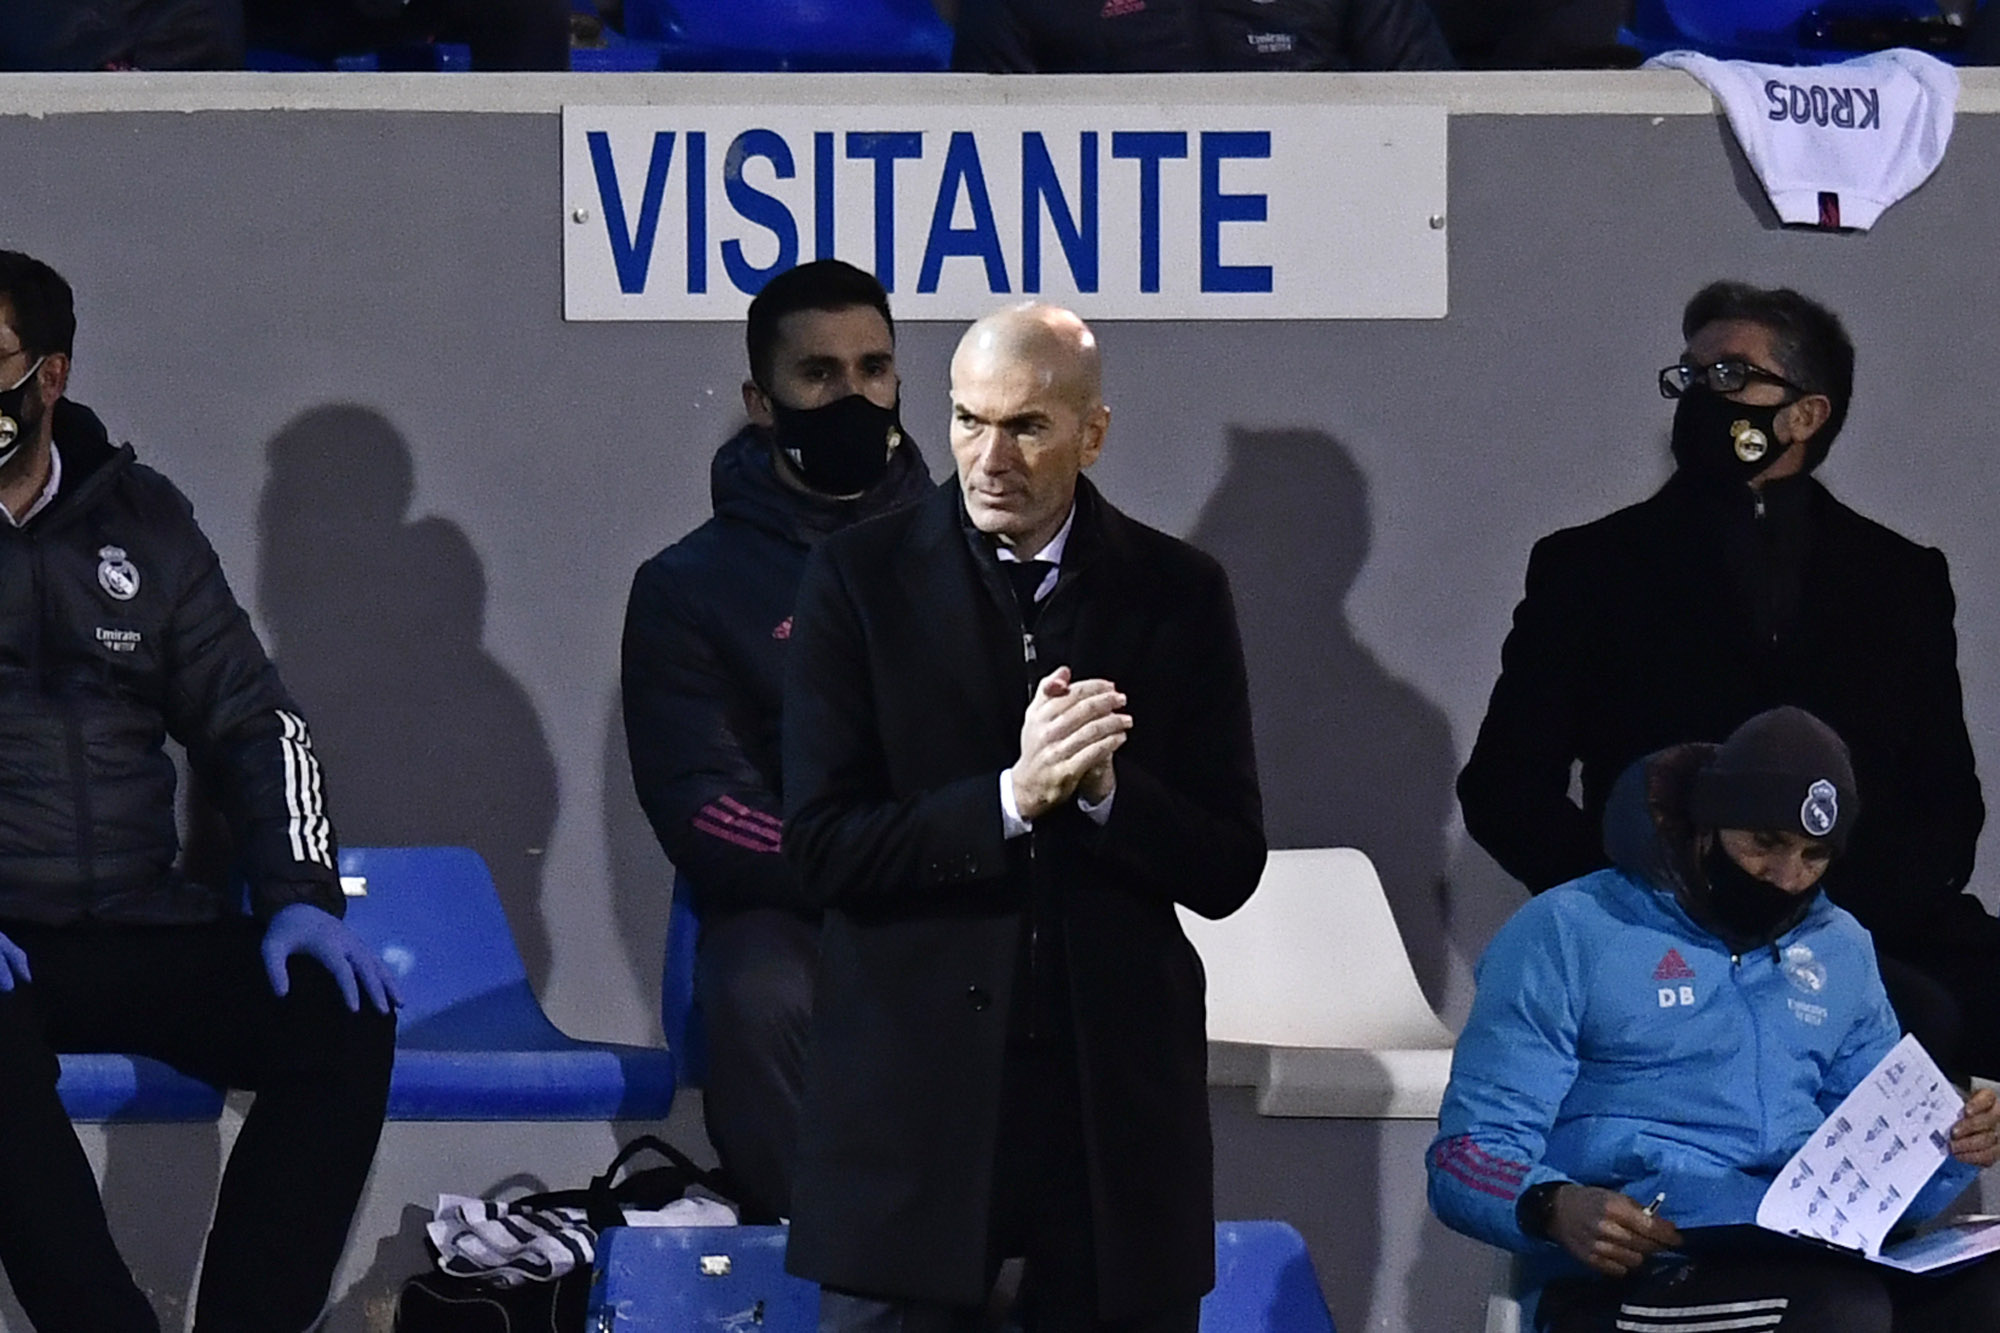 Real Madrid's head coach Zinedine Zidane is pictured during a match between Alcoyano and Real Madrid at the El Collao stadium in Alcoy, Spain, on January 20.